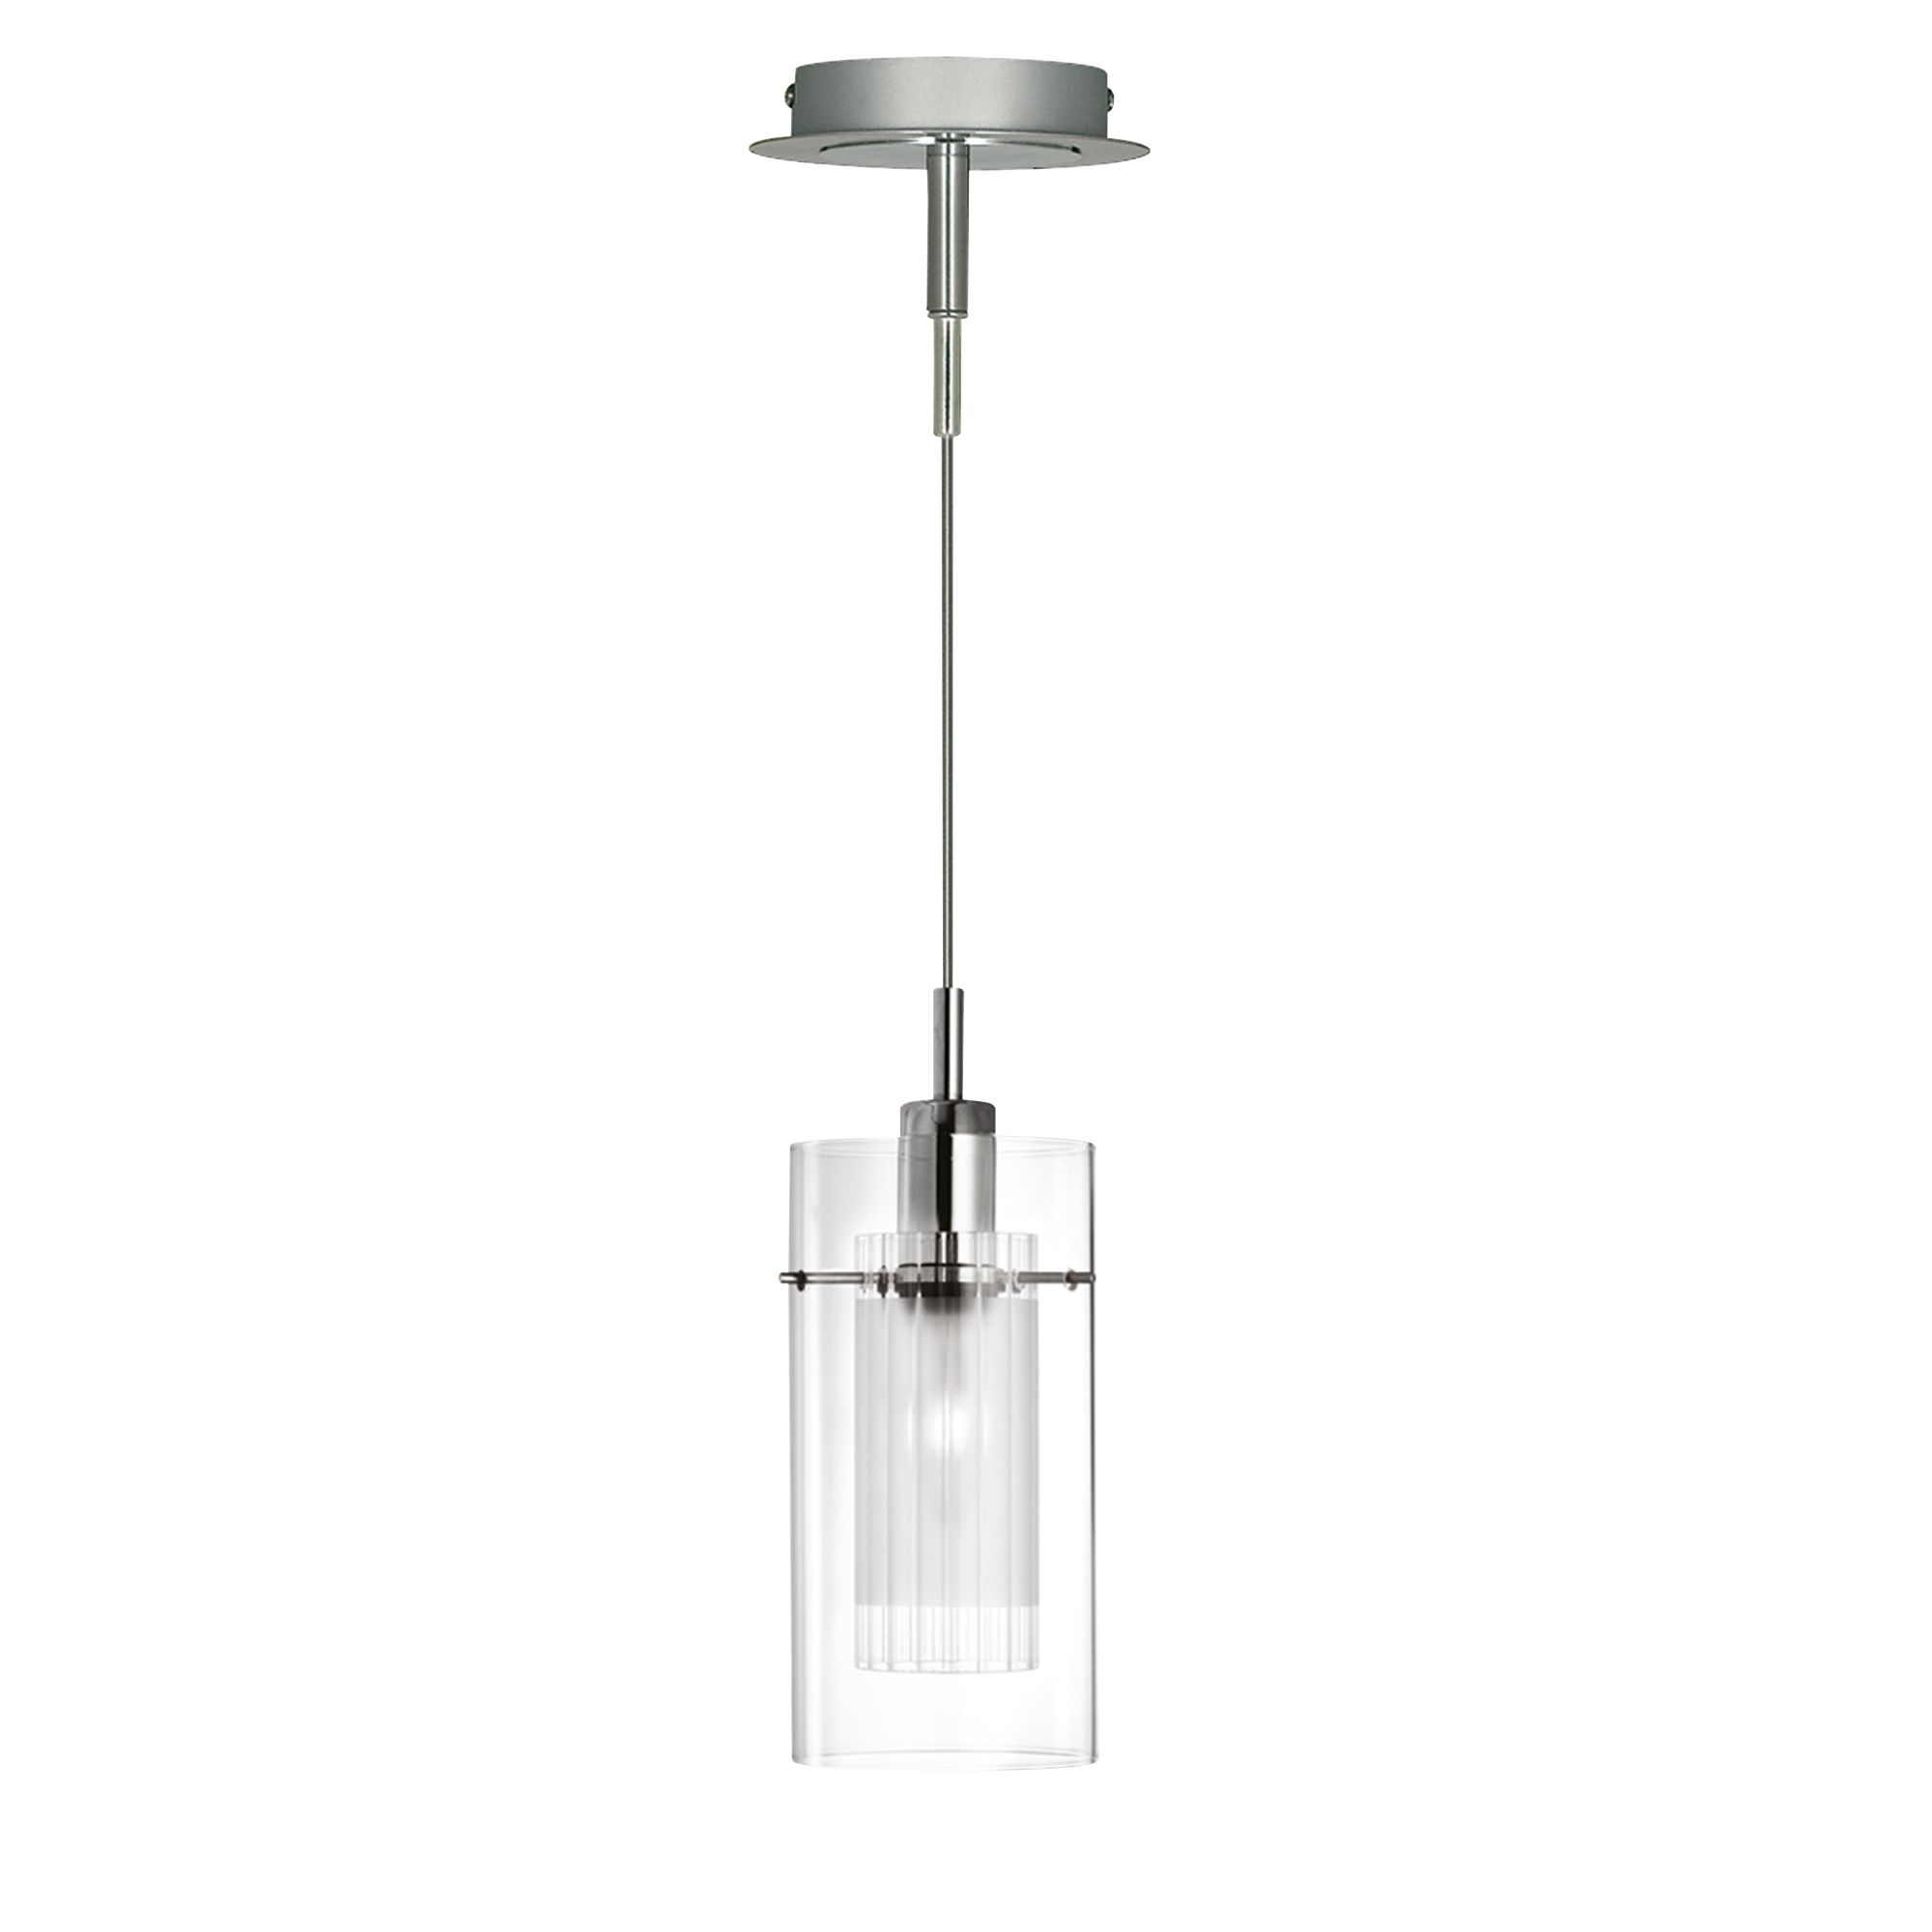 Duo 1 Chrome Pendant Light With Double Glass Cylinder Shade